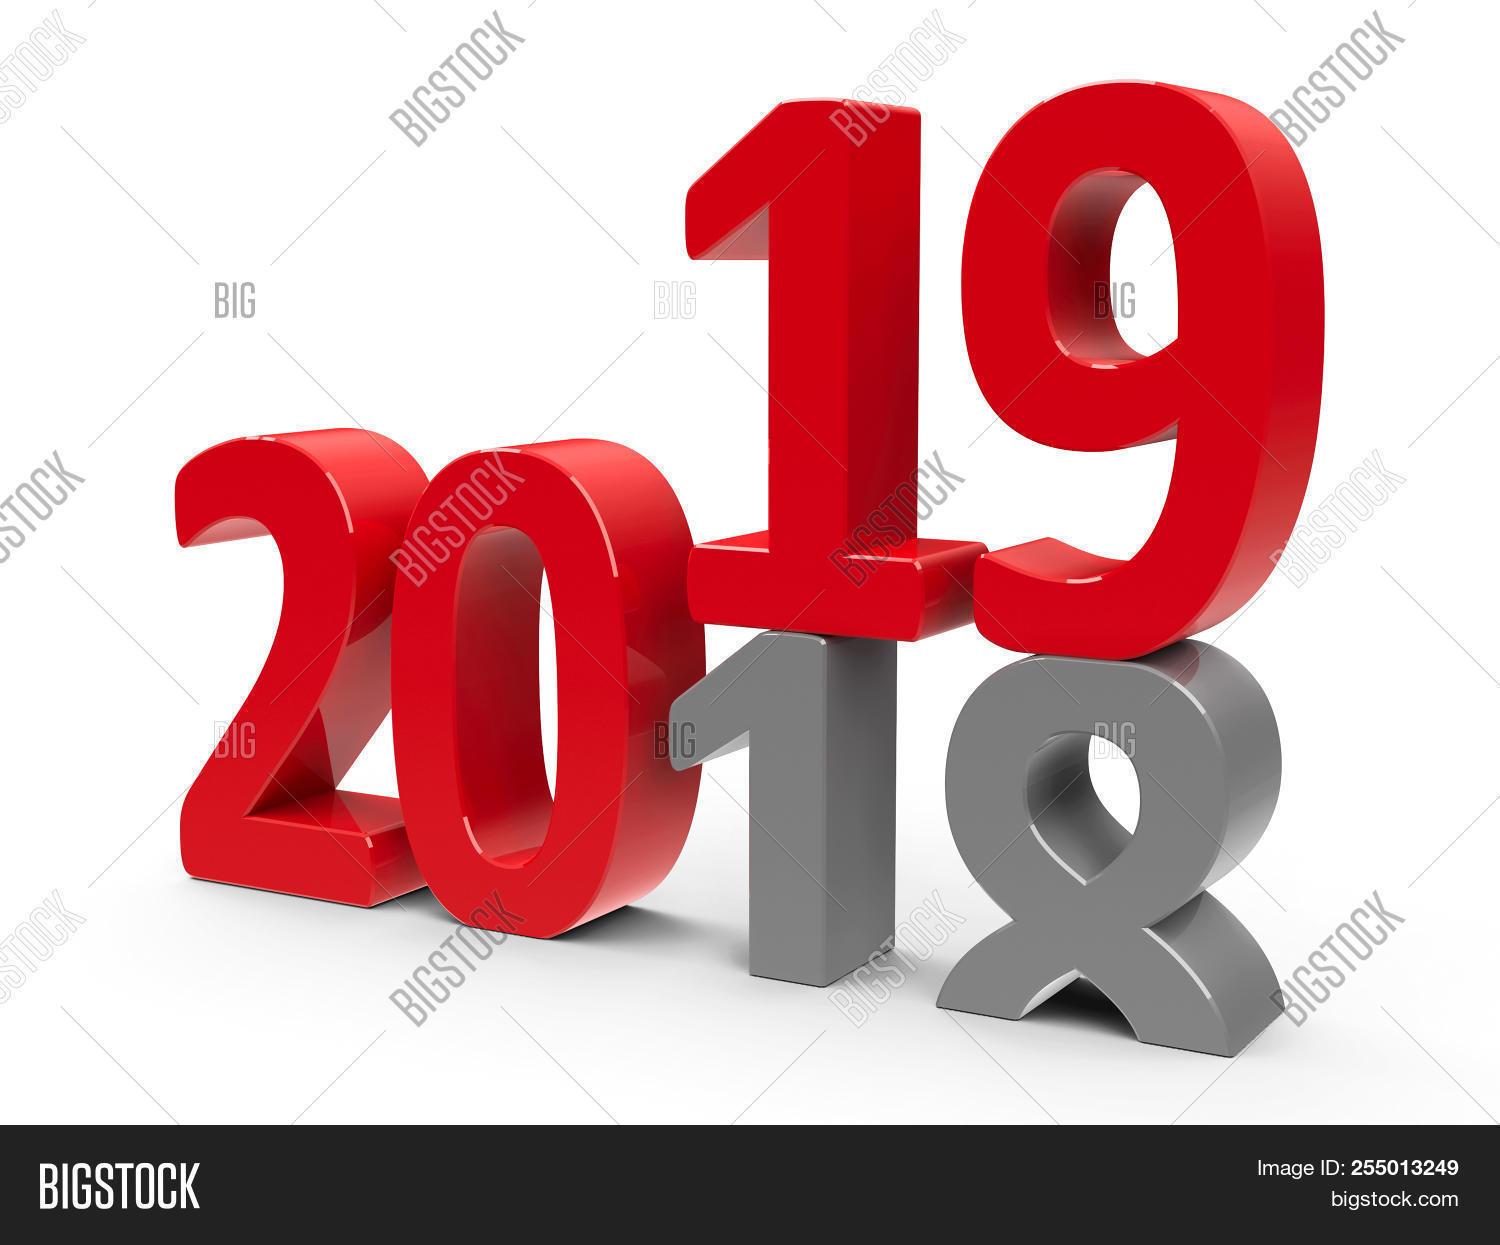 2018,2019,3d,anticipation,background,business,calendar,career,celebration,chance,change,christmas,color,concept,congratulation,countdown,creative,date,design,end,eve,event,expectation,future,gray,half,happy,holiday,illustration,isolated,new,newyear,number,objective,overlay,past,plan,planning,plastic,red,render,sale,shape,start,time,turn,white,winter,xmas,year